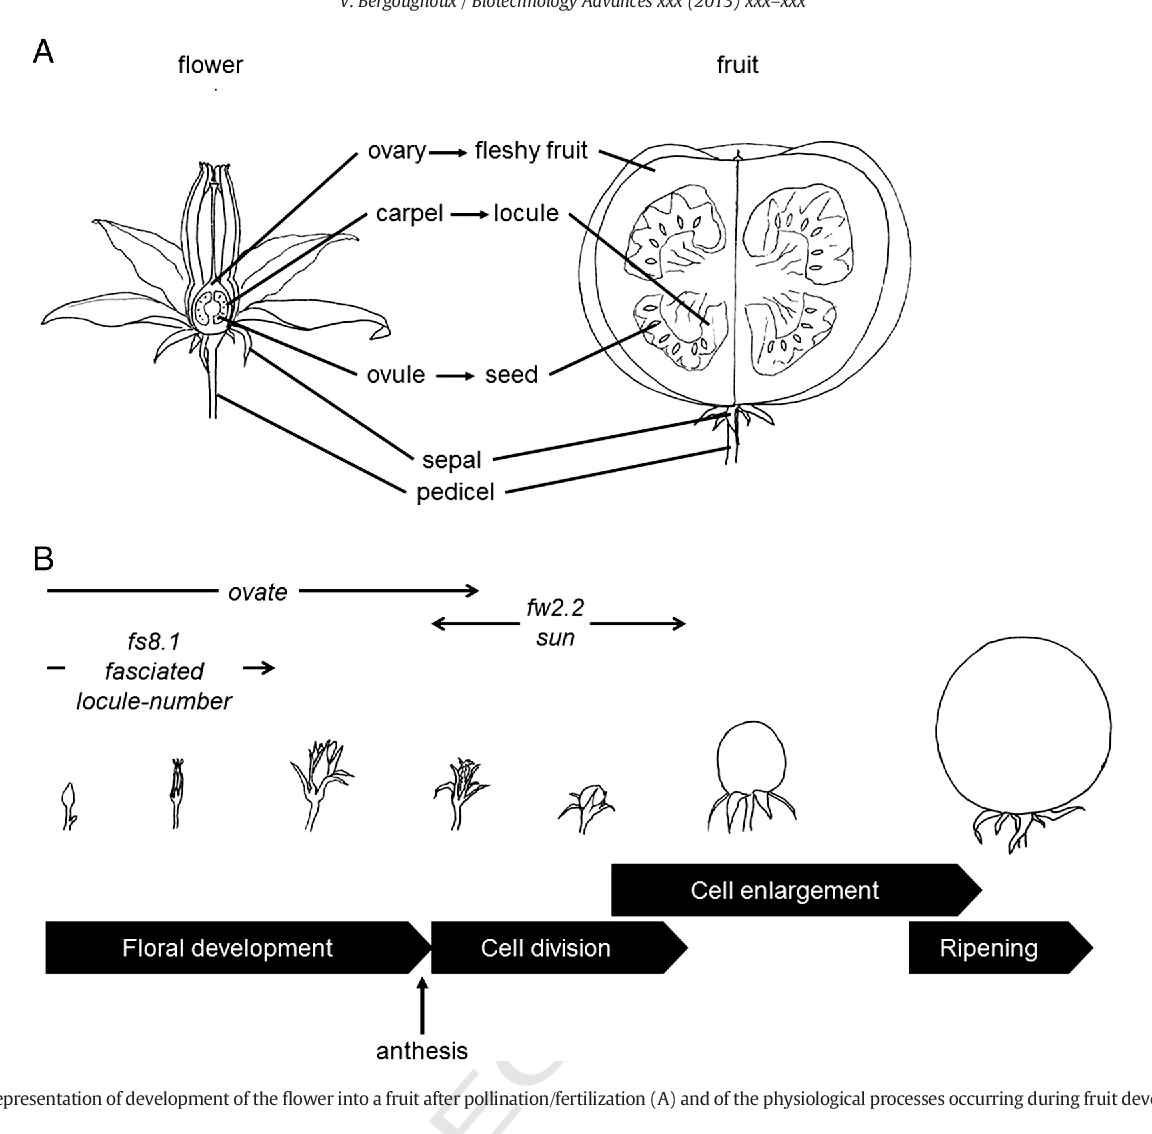 hight resolution of schematic representation of development of the flower into a fruit after pollination